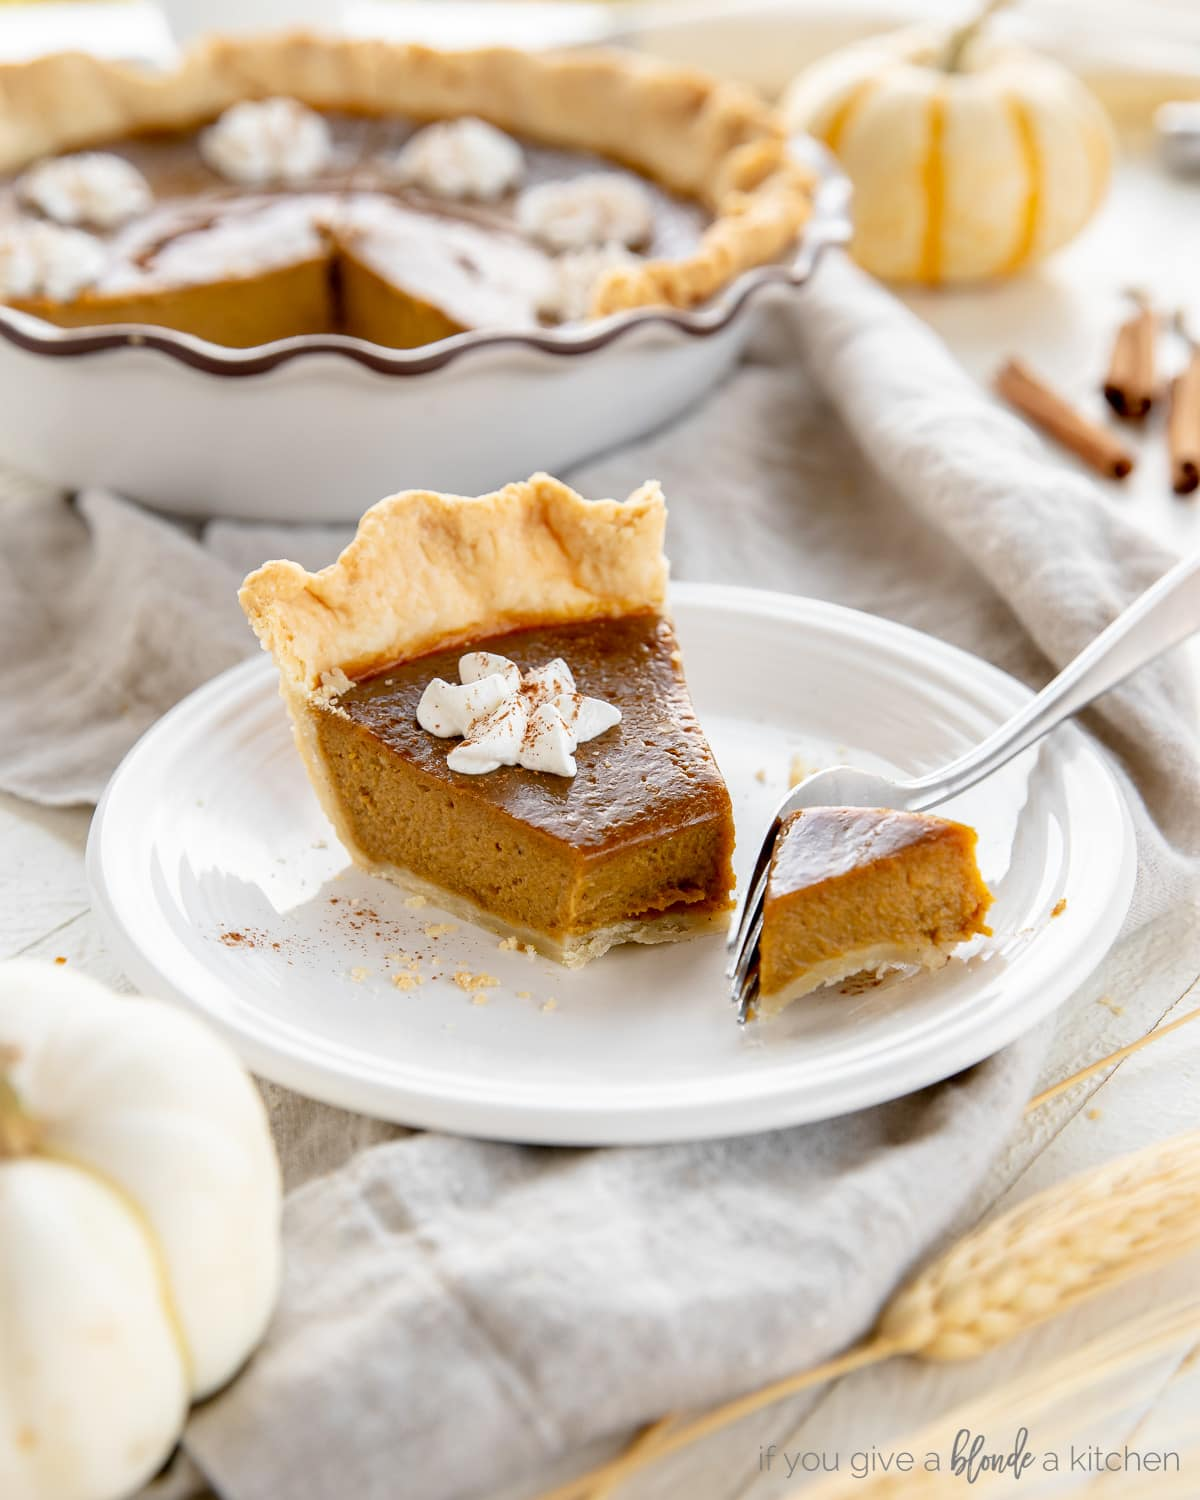 slice of pumpkin pie on plate with fork taking a bite